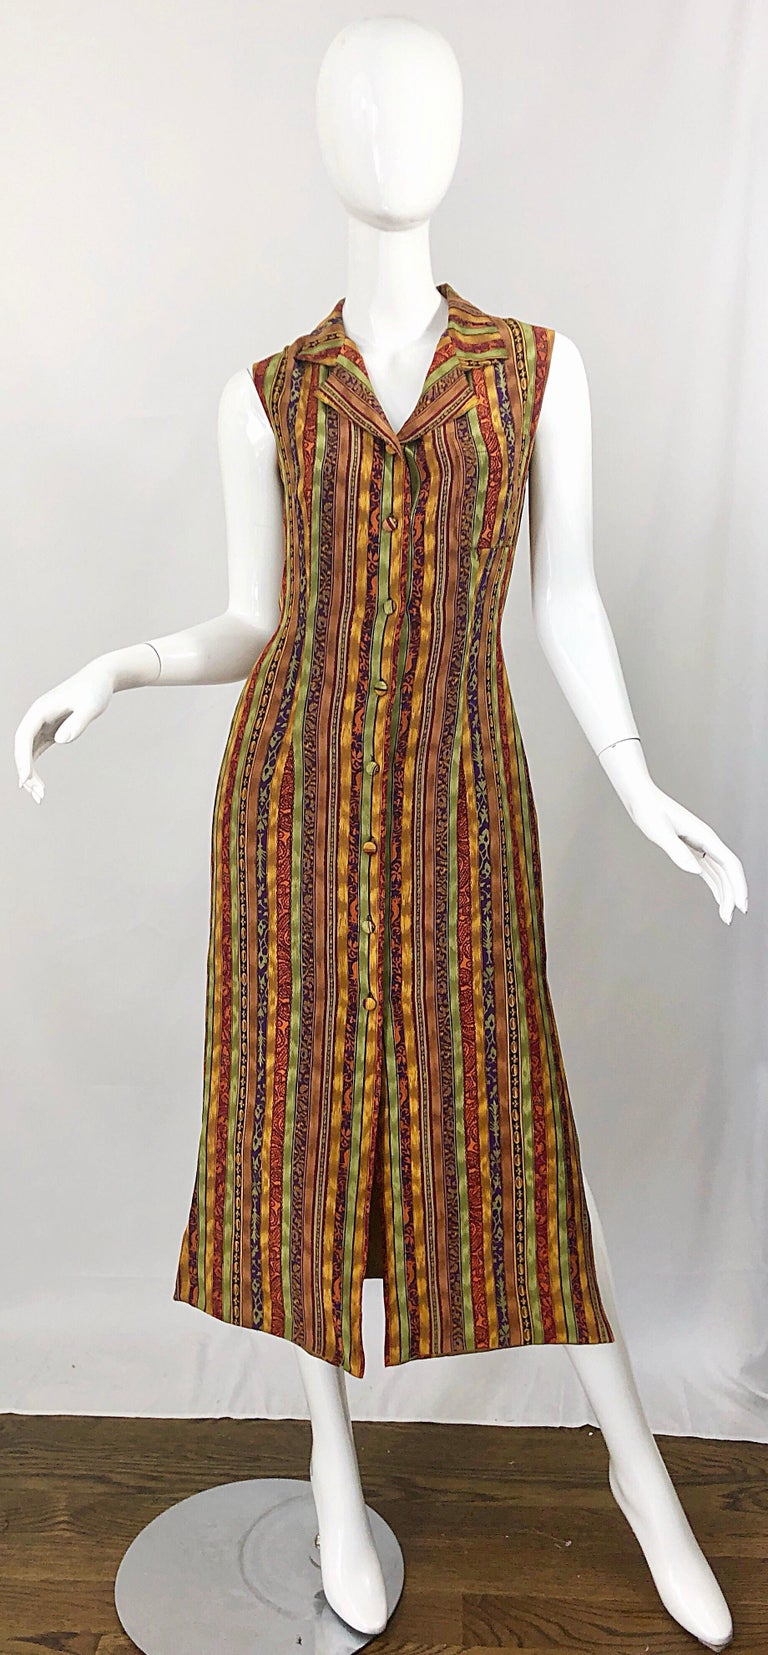 Stylish vintage early 90s warm color vertical striped Aztec themed midi shirt dress! Features warm colors of orange, yellow, green, purple, maroon and yellow throughout. Adjustable tie at back waist can adjust to fit. Very well made, obviously by a